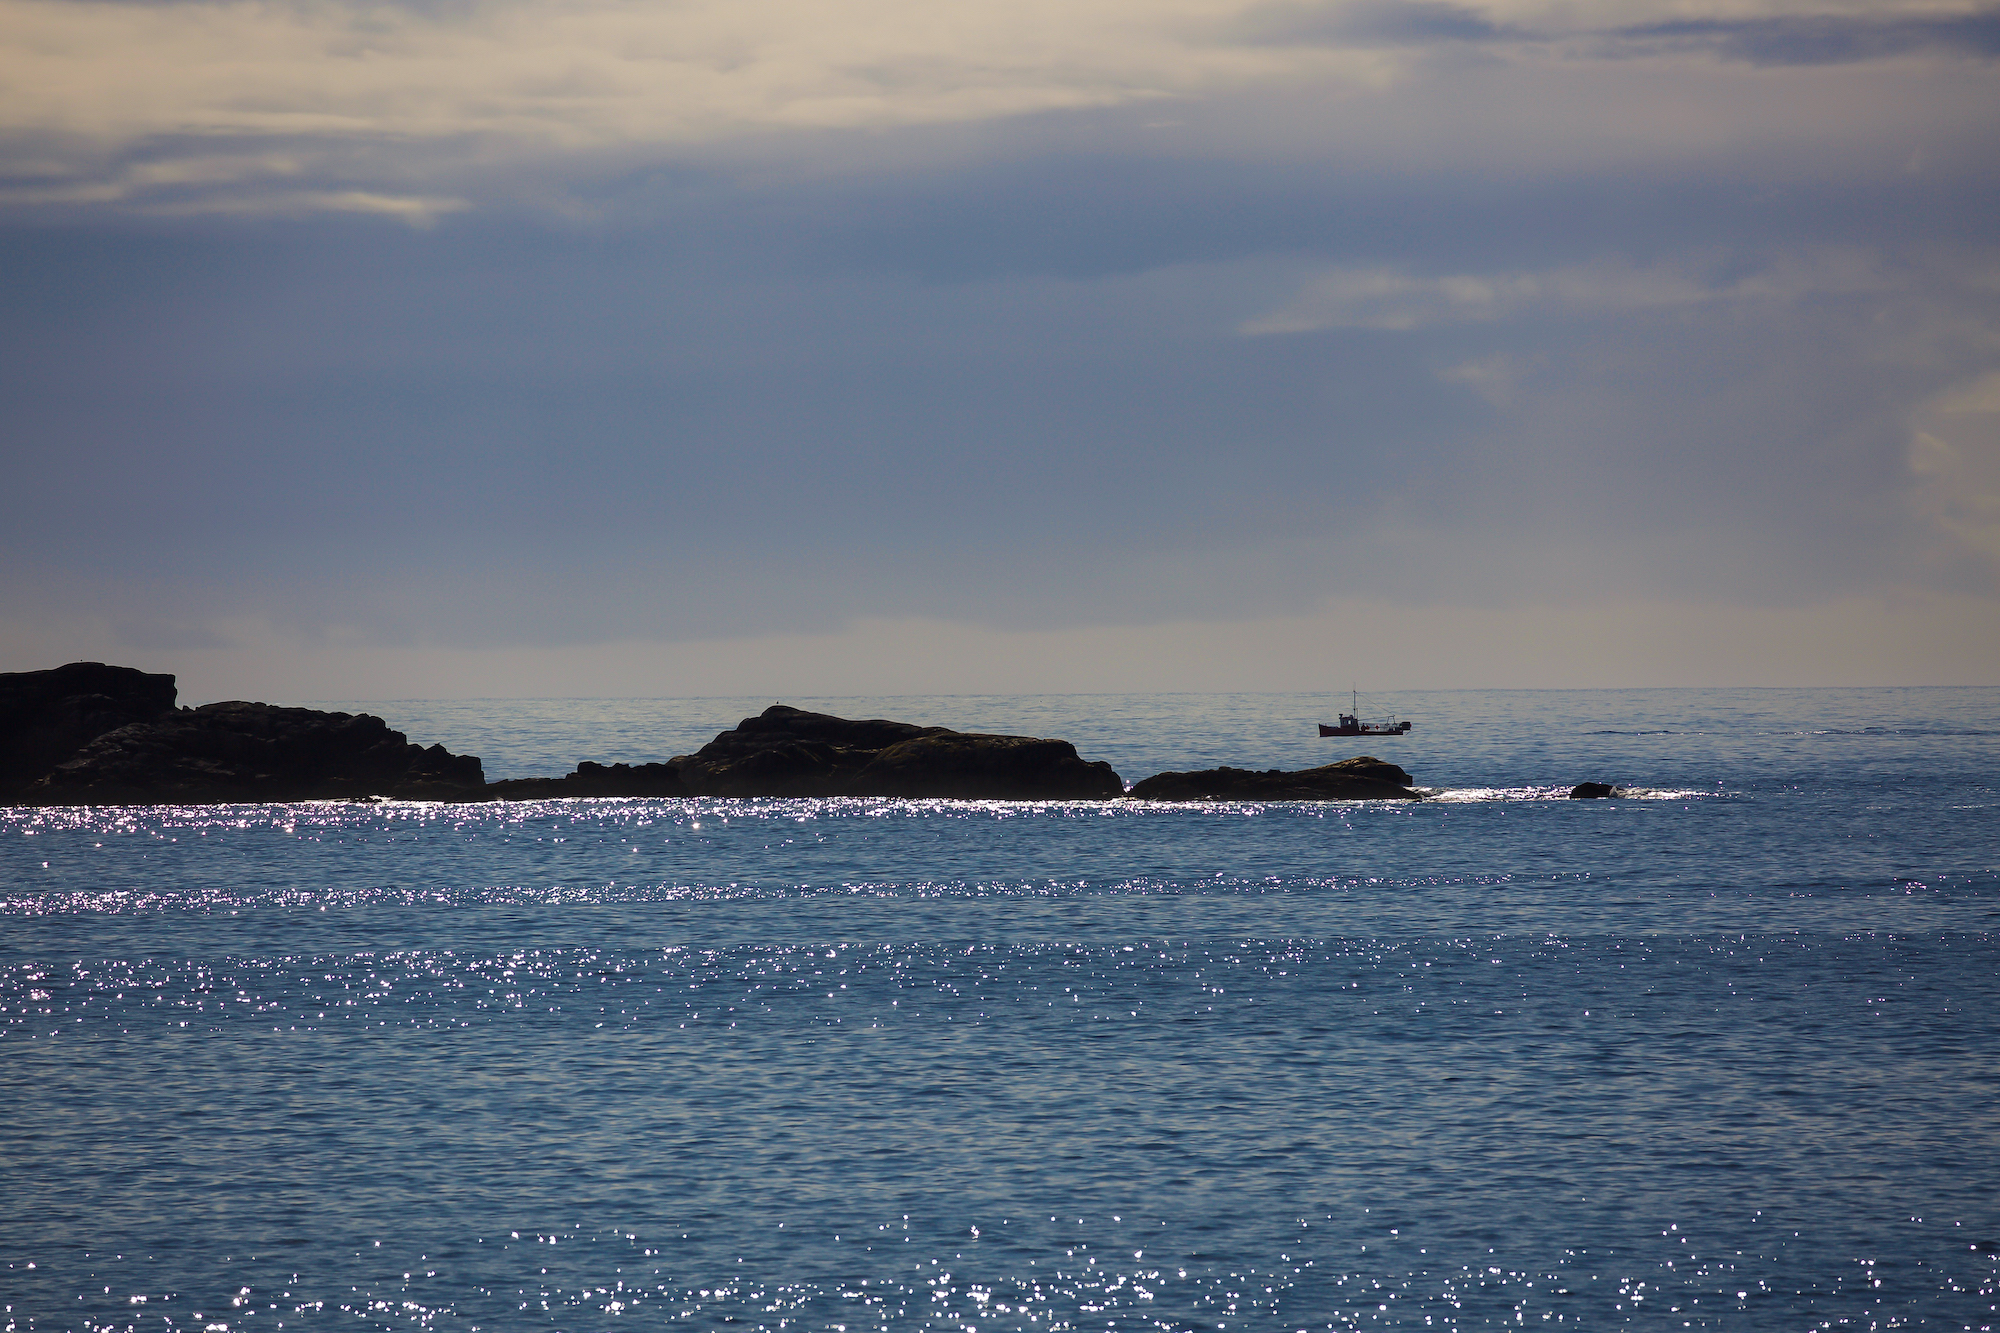 (167) View from Pier at Droman, Kinlochbervie to Dubh Sgeir Island (fishing in white light), Cape Wrath, Scotland. Copyright David Wheater.jpg